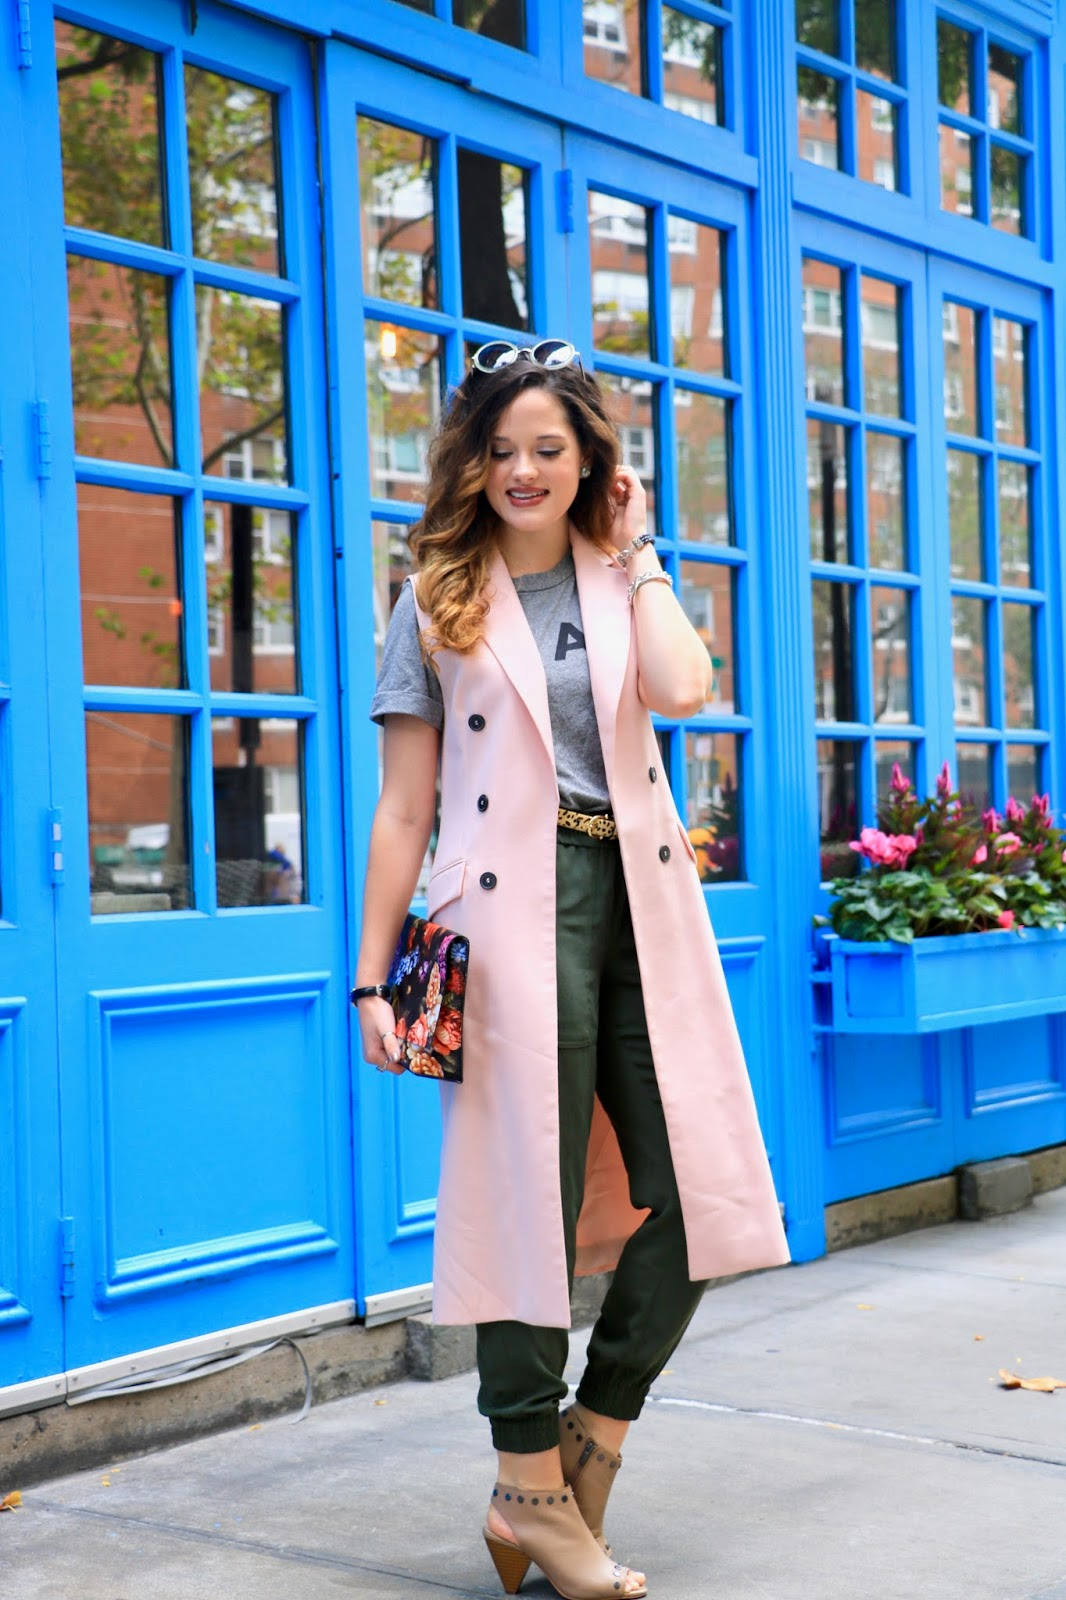 Nyc fashion blogger Kathleen Harper showing how to wear a long vest